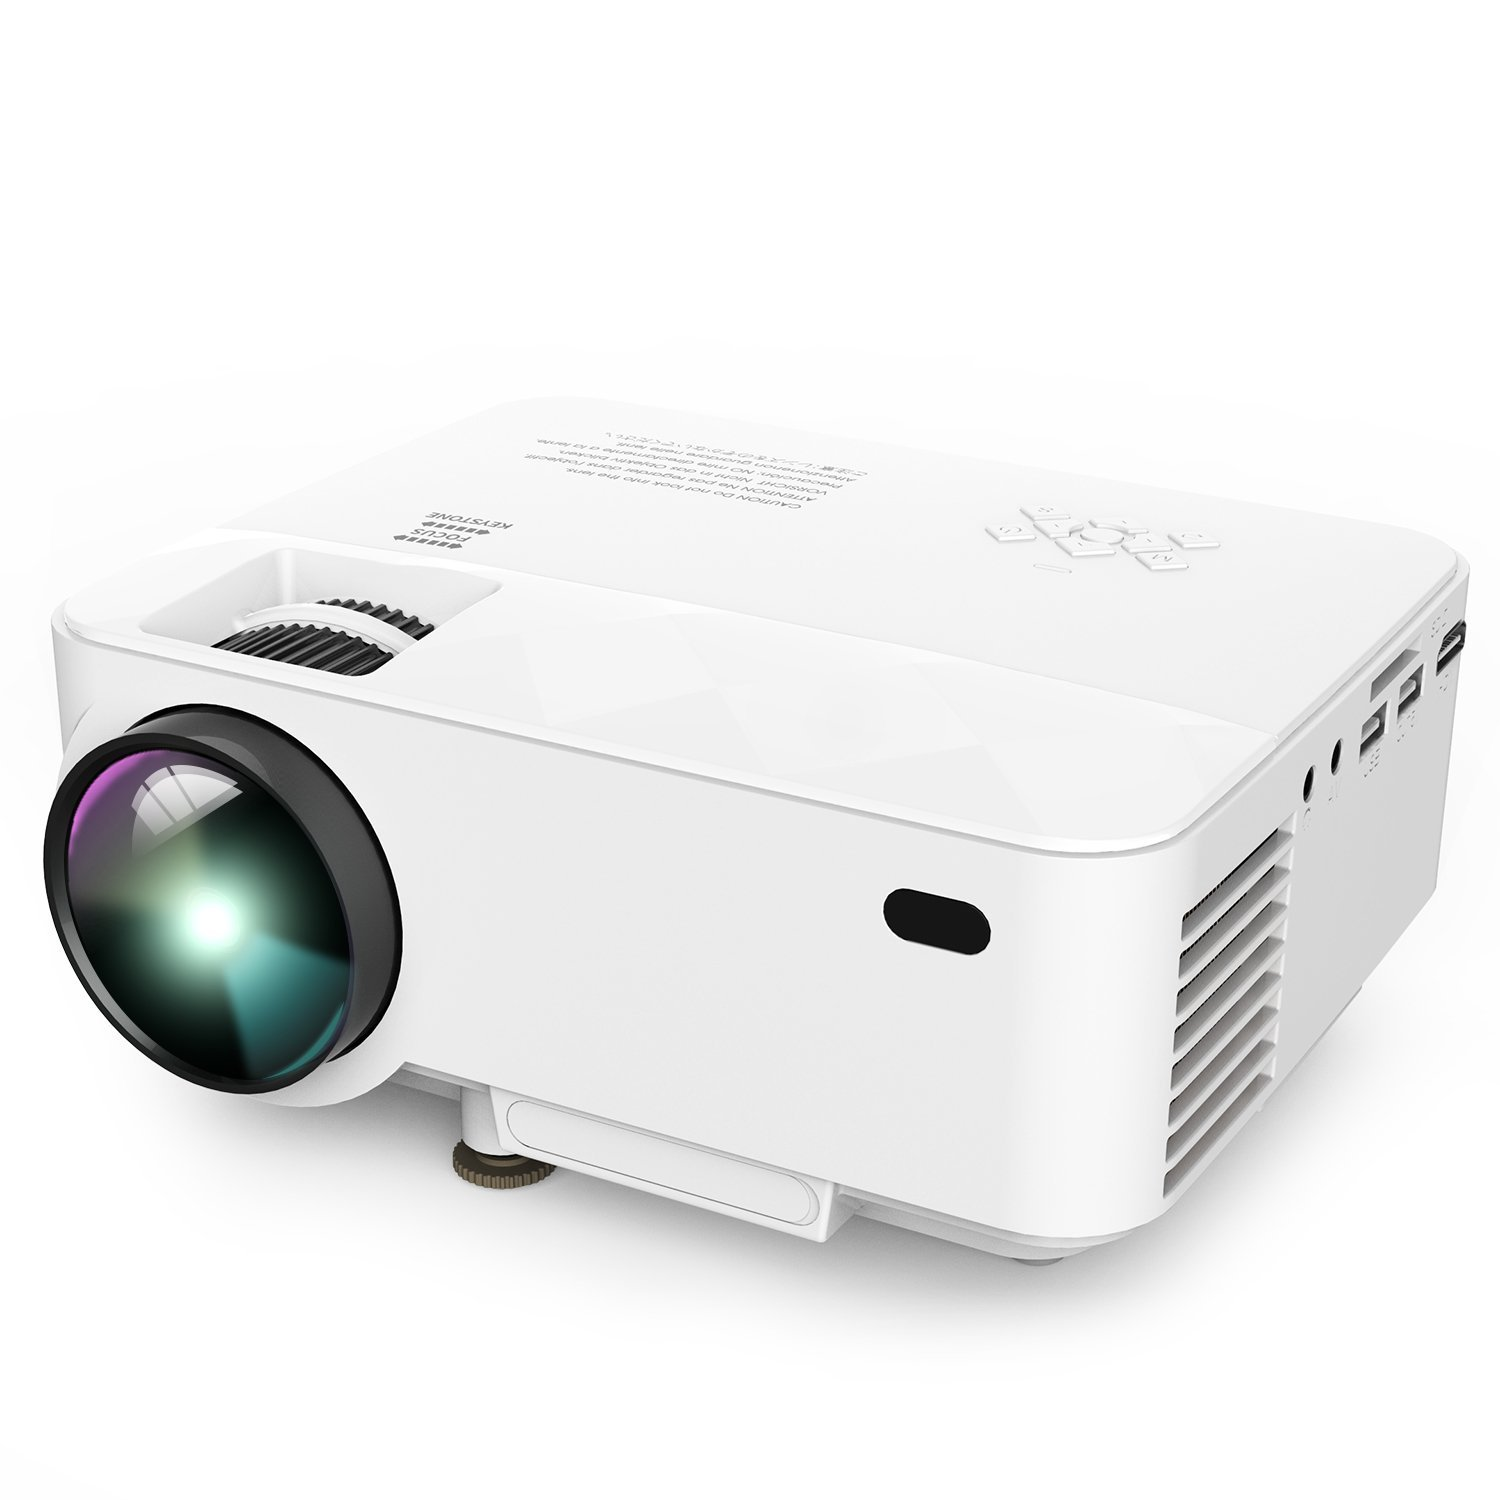 DBPOWER T21 Upgraded LED Projector,1800 Lumens Multimedia Home Theater Video Projector Supporting 1080P, HDMI, USB, SD Card, VGA, AV for Home Cinema, TV, Laptops, Games, Smartphones & iPad by DBPOWER